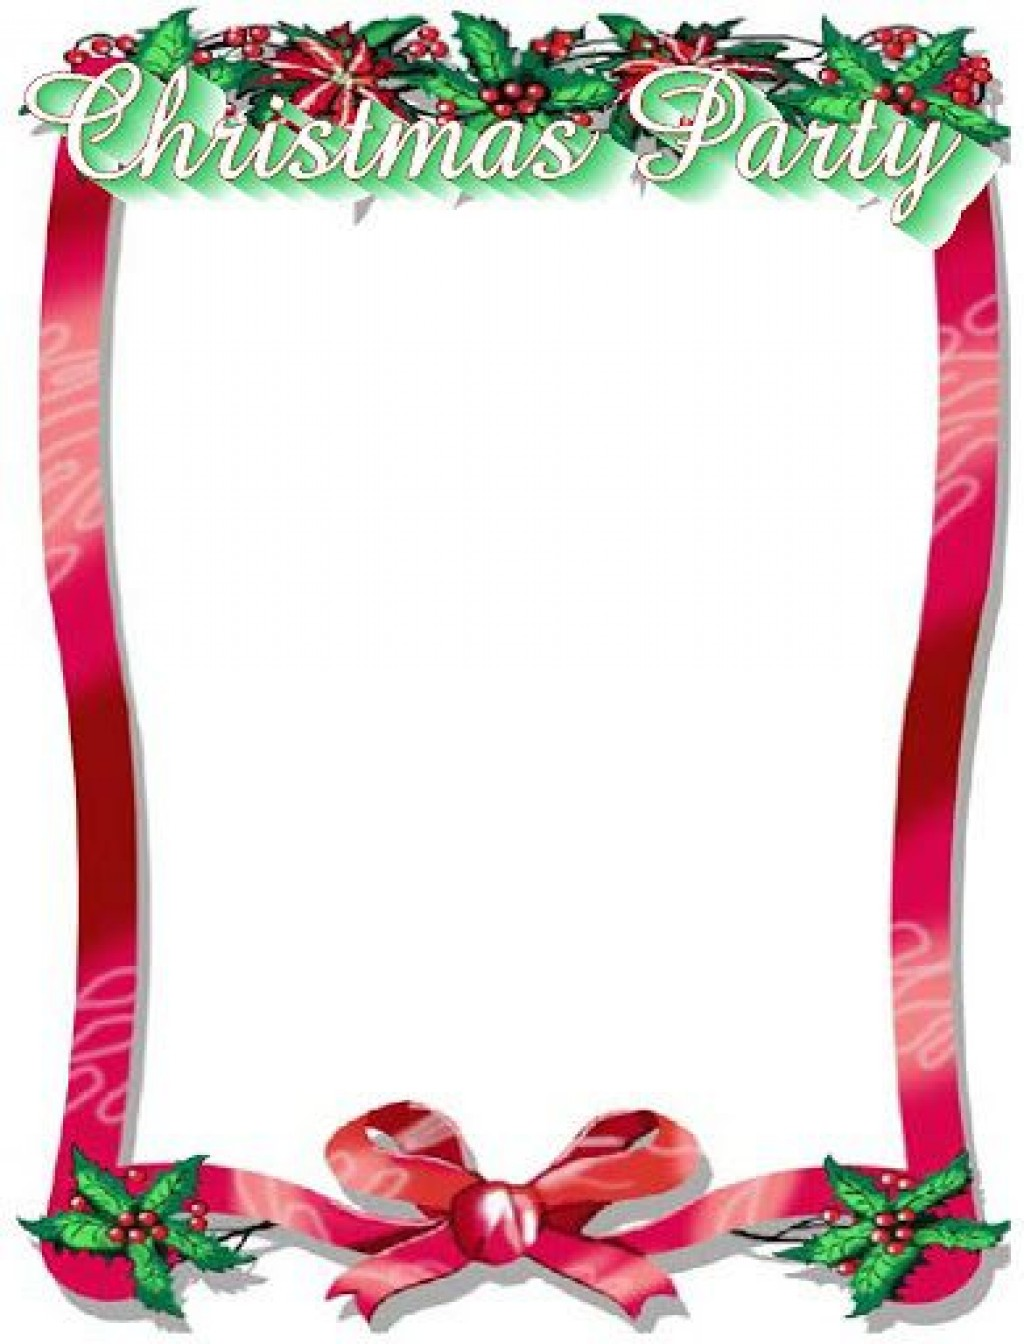 003 Stupendou Christma Stationery Template Microsoft Word Inspiration  FreeLarge